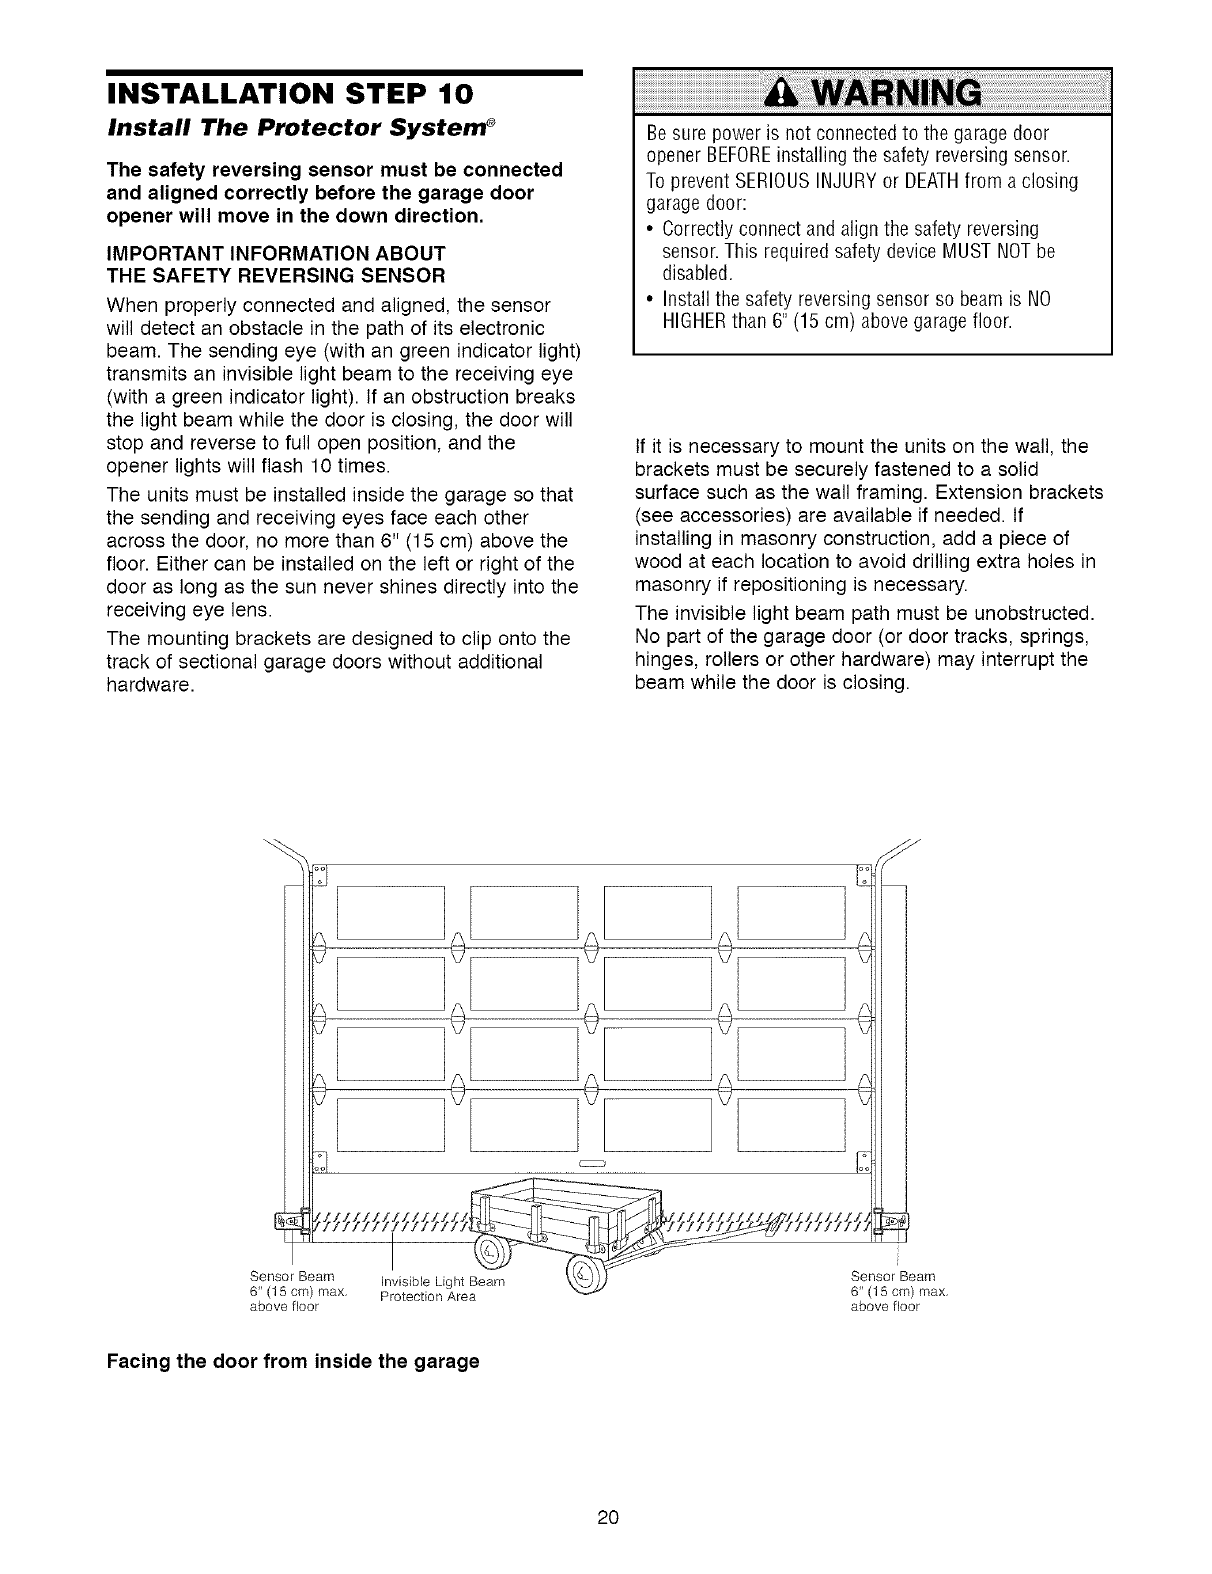 Craftsman 1395364812 User Manual 1 2 Hp Garage Door Opener Manuals Safety Reversing Sensor Wiring Diagram Installation Step 10 Install The Protector System Must Be Connected And Aligned Correctly Before